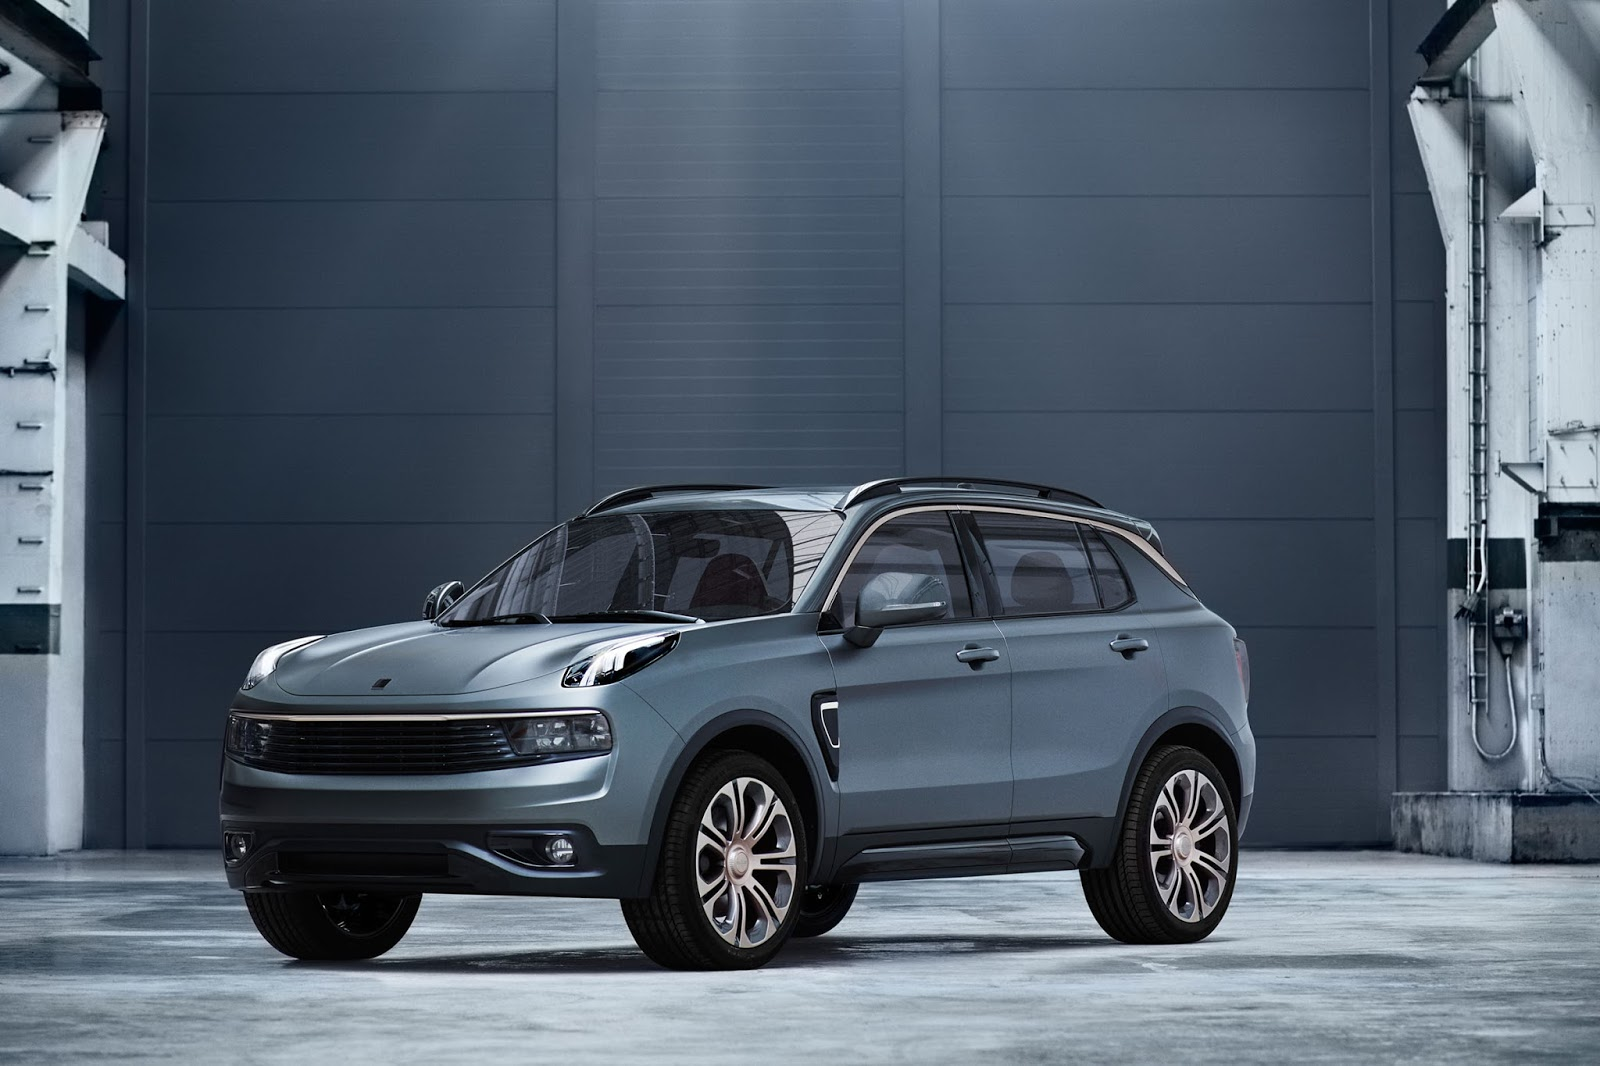 Lynk & Co Introduces Shareable, Connected, Hybrid SUV